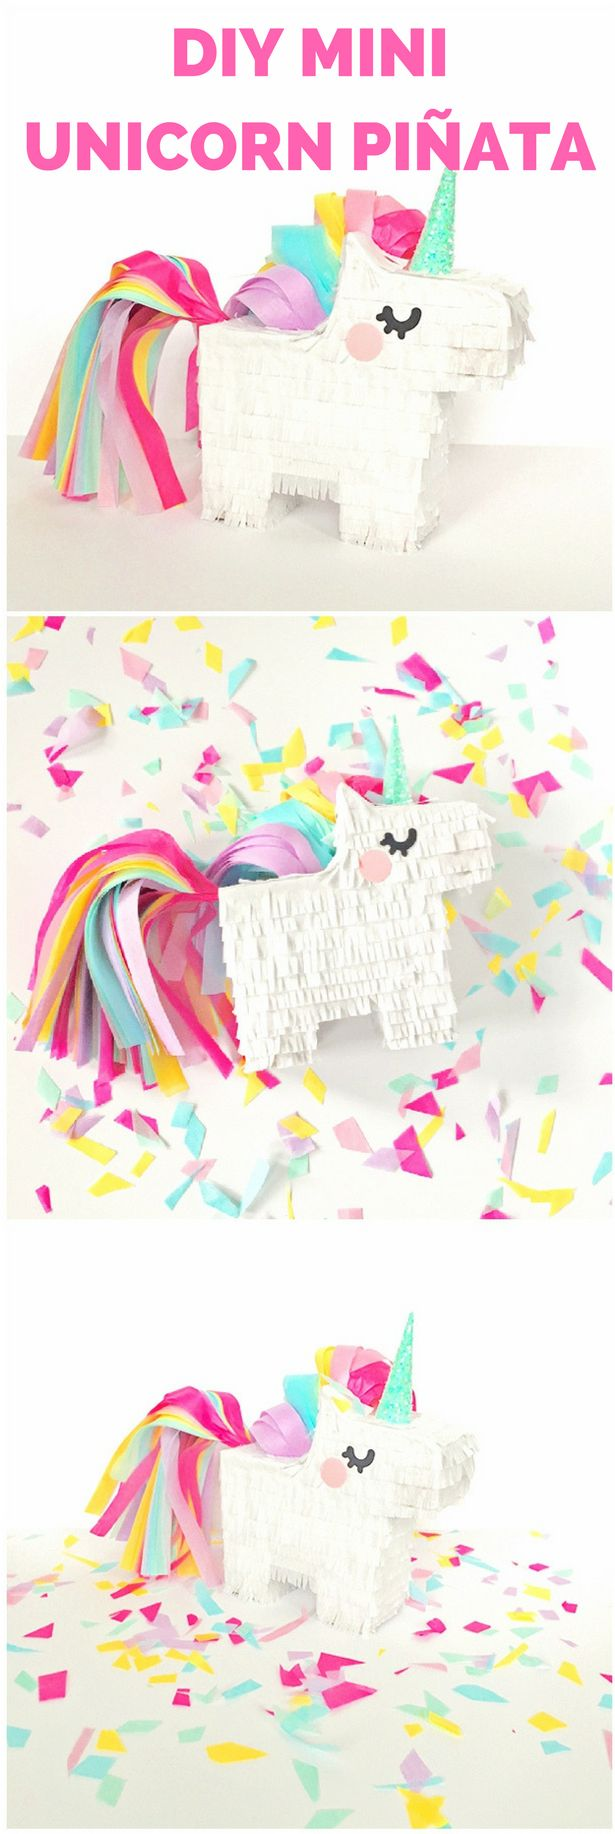 DIY Mini Unicorn Pinata with Free Printable Template. Learn how to make this cute Pinata for kids parties, celebrations or party favors!